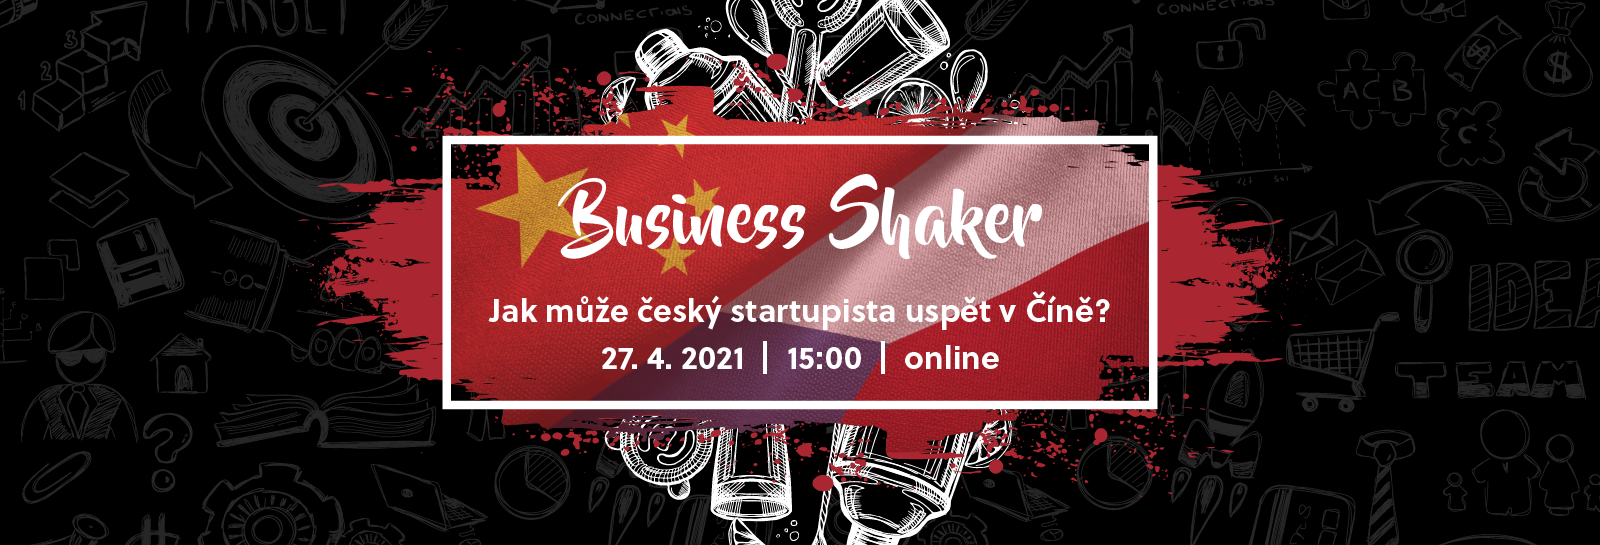 StartUp_Business-Shaker_1600x545px_special-edice_01-01-(1) (1)